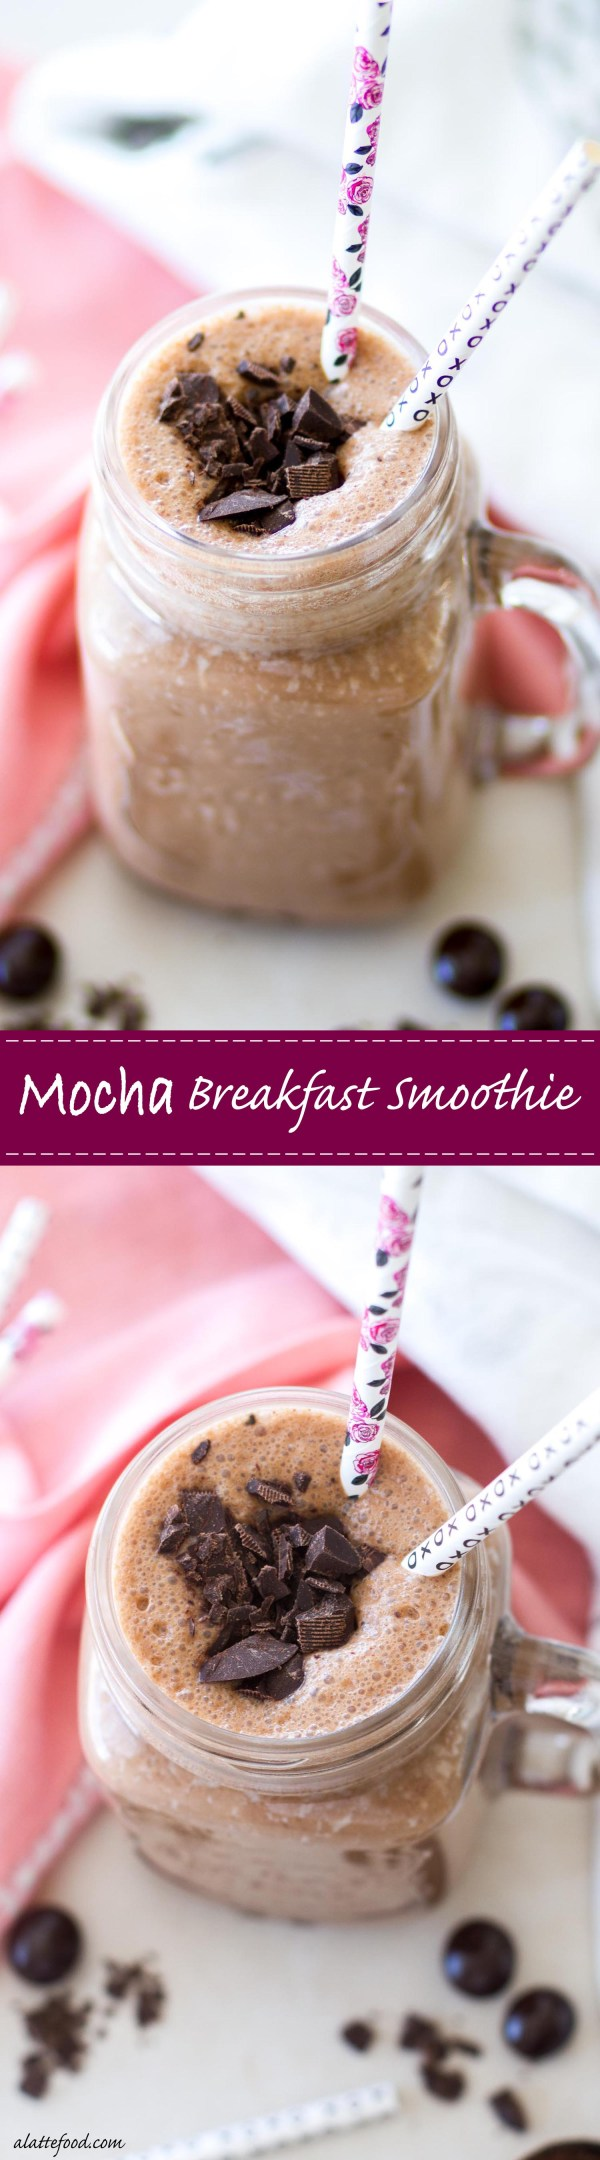 This mocha breakfast smoothie combines your morning coffee and breakfast together in an on-the-go smoothie!